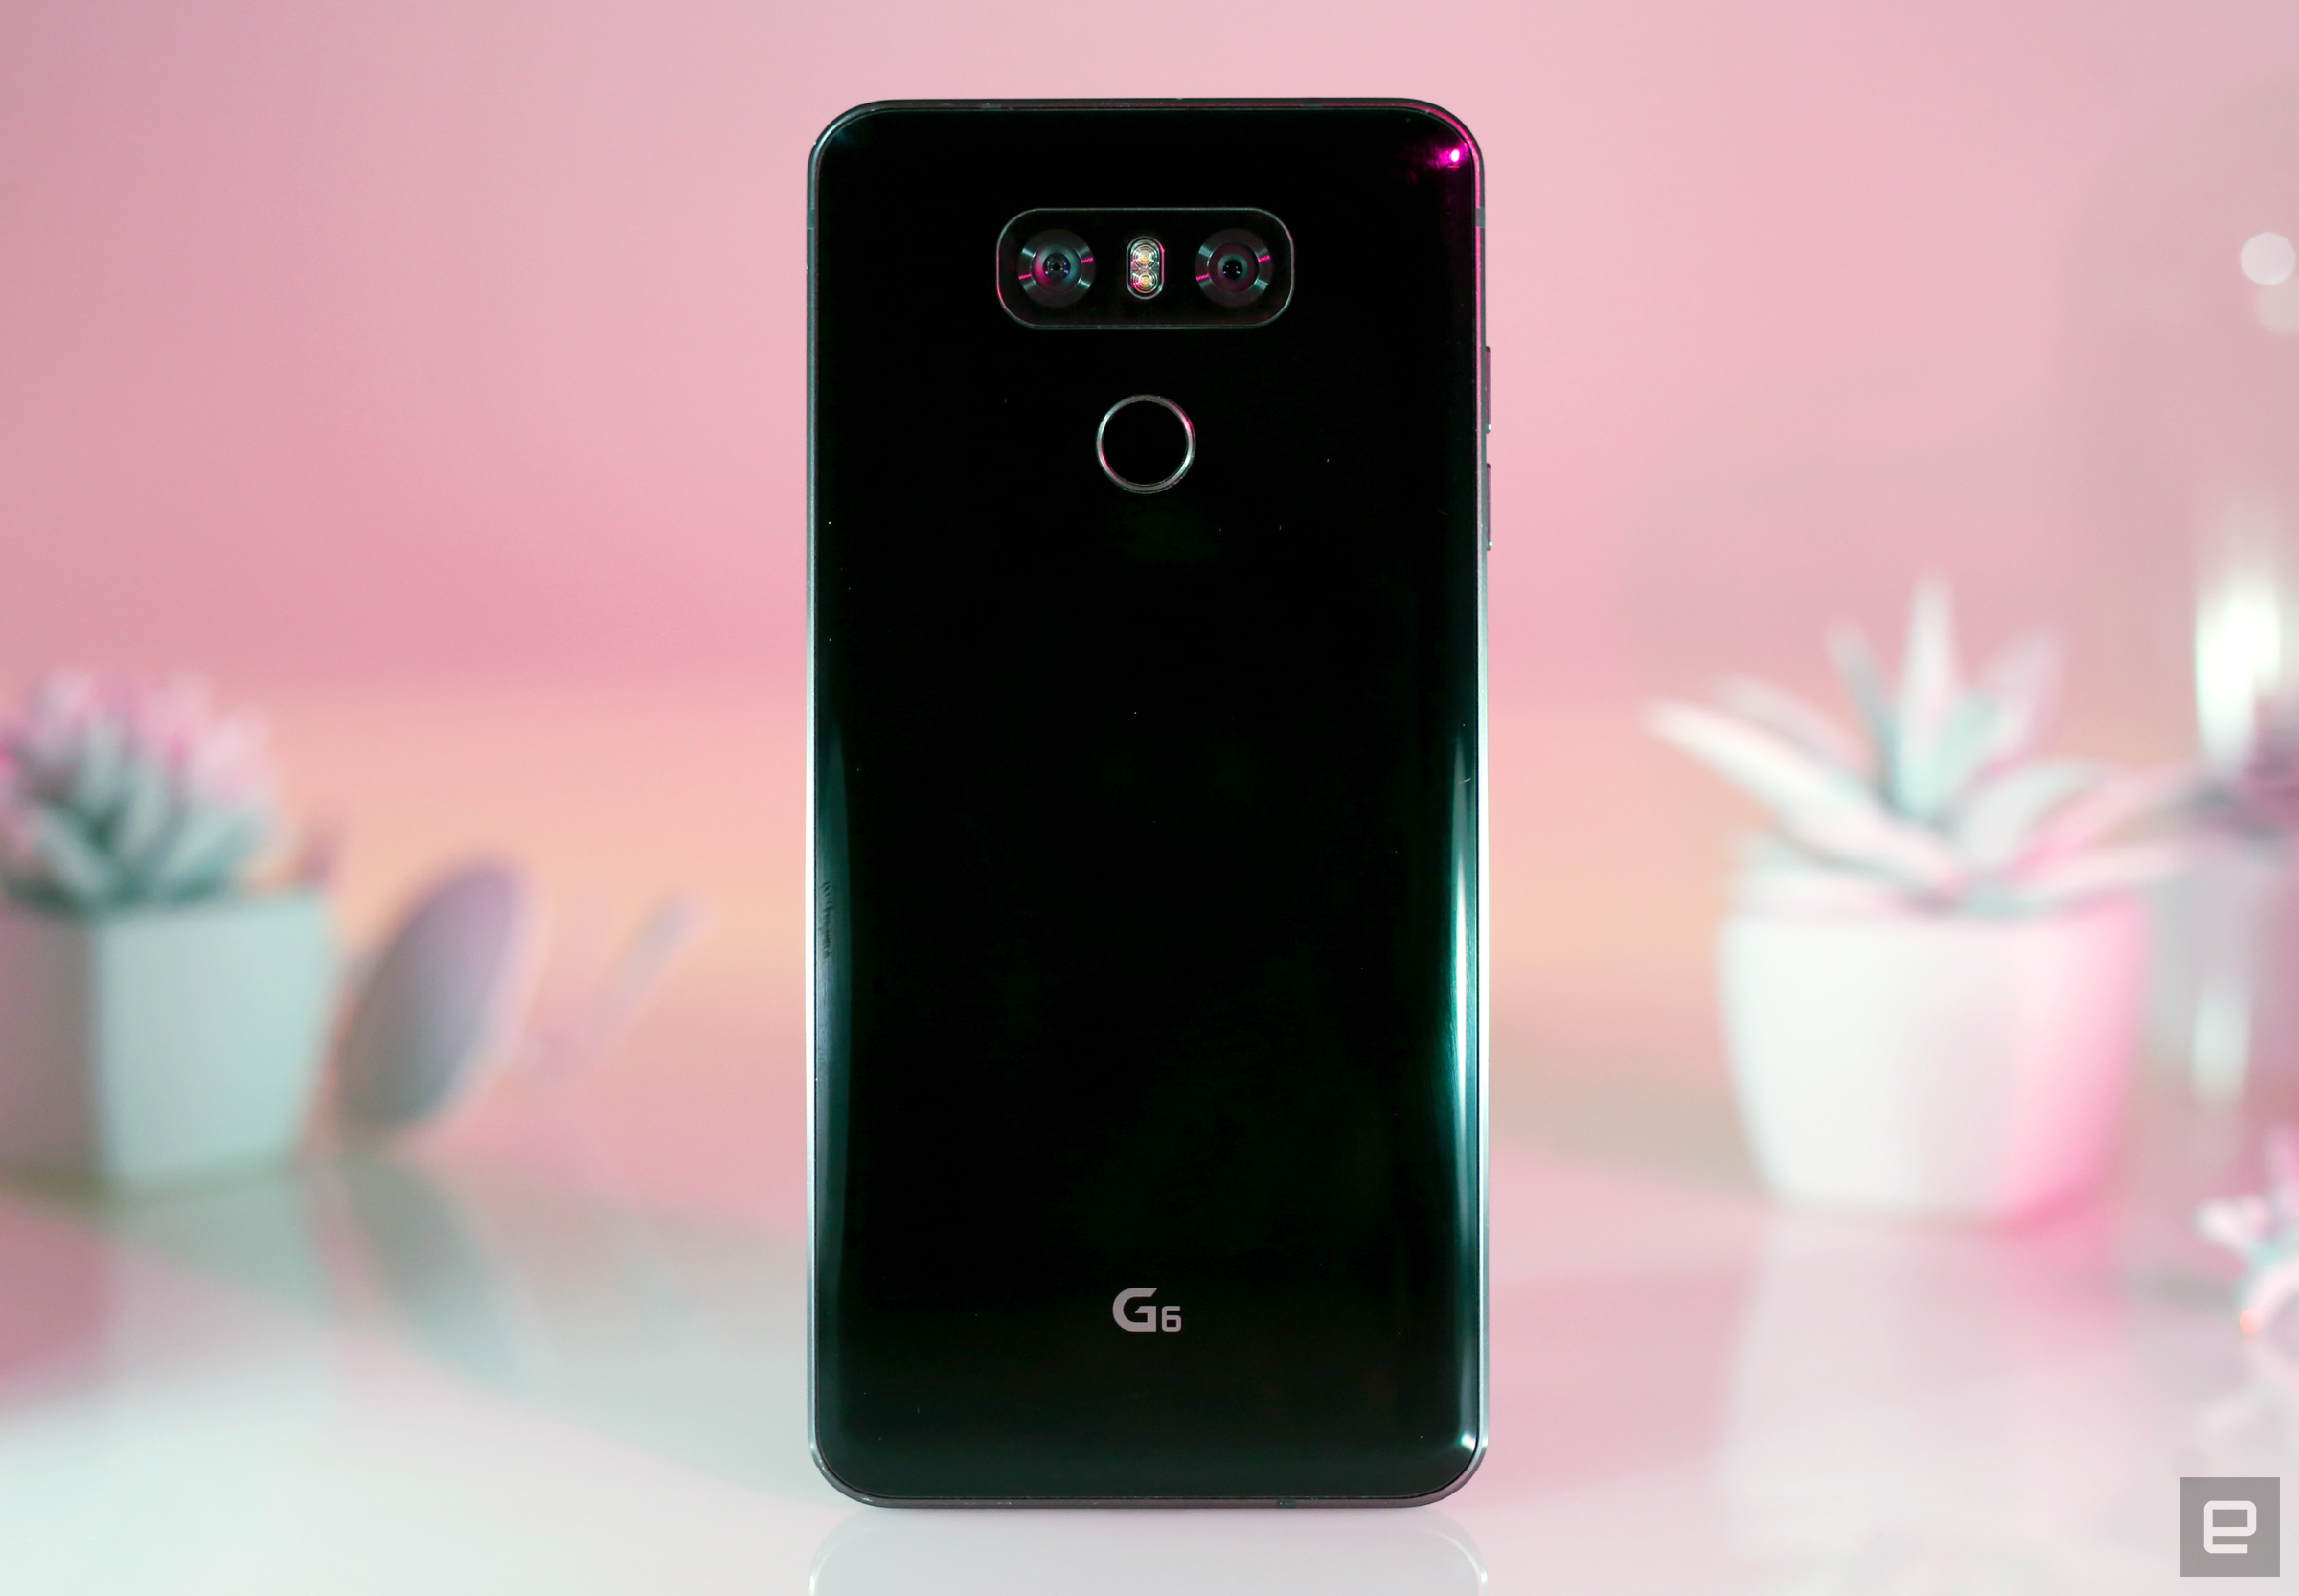 LG G6 review: Finally back in the race